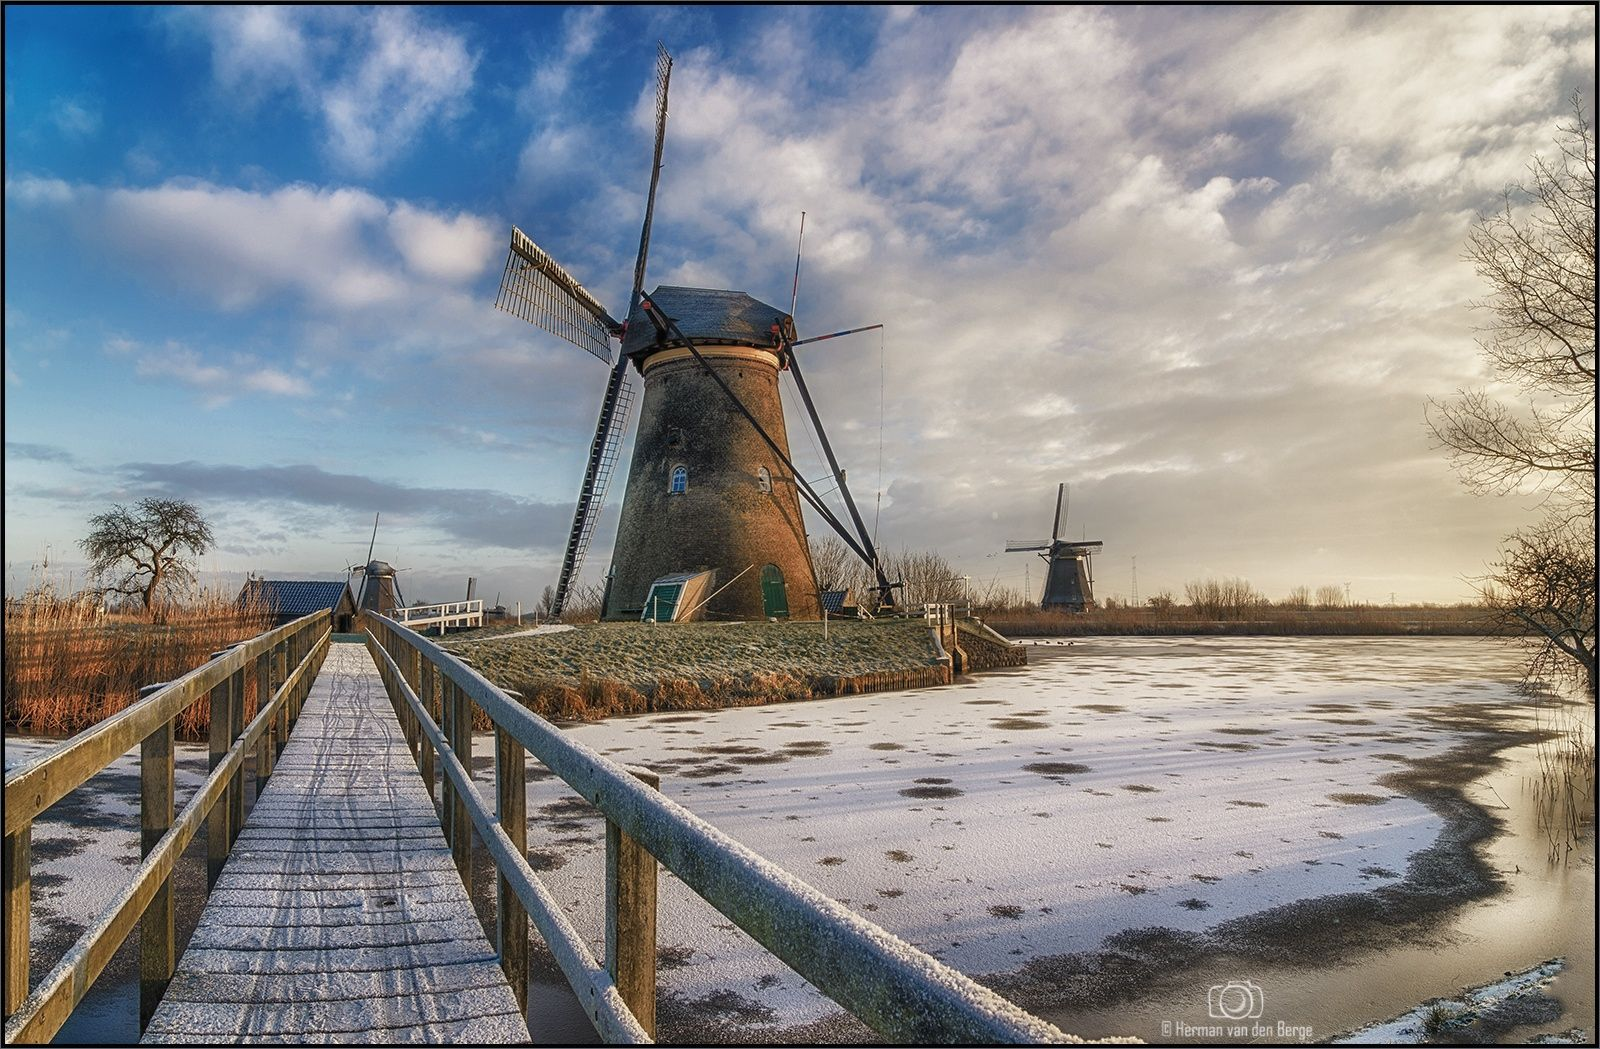 A Beautiful morning at Kinderdijk by Herman van den Berge on 500px